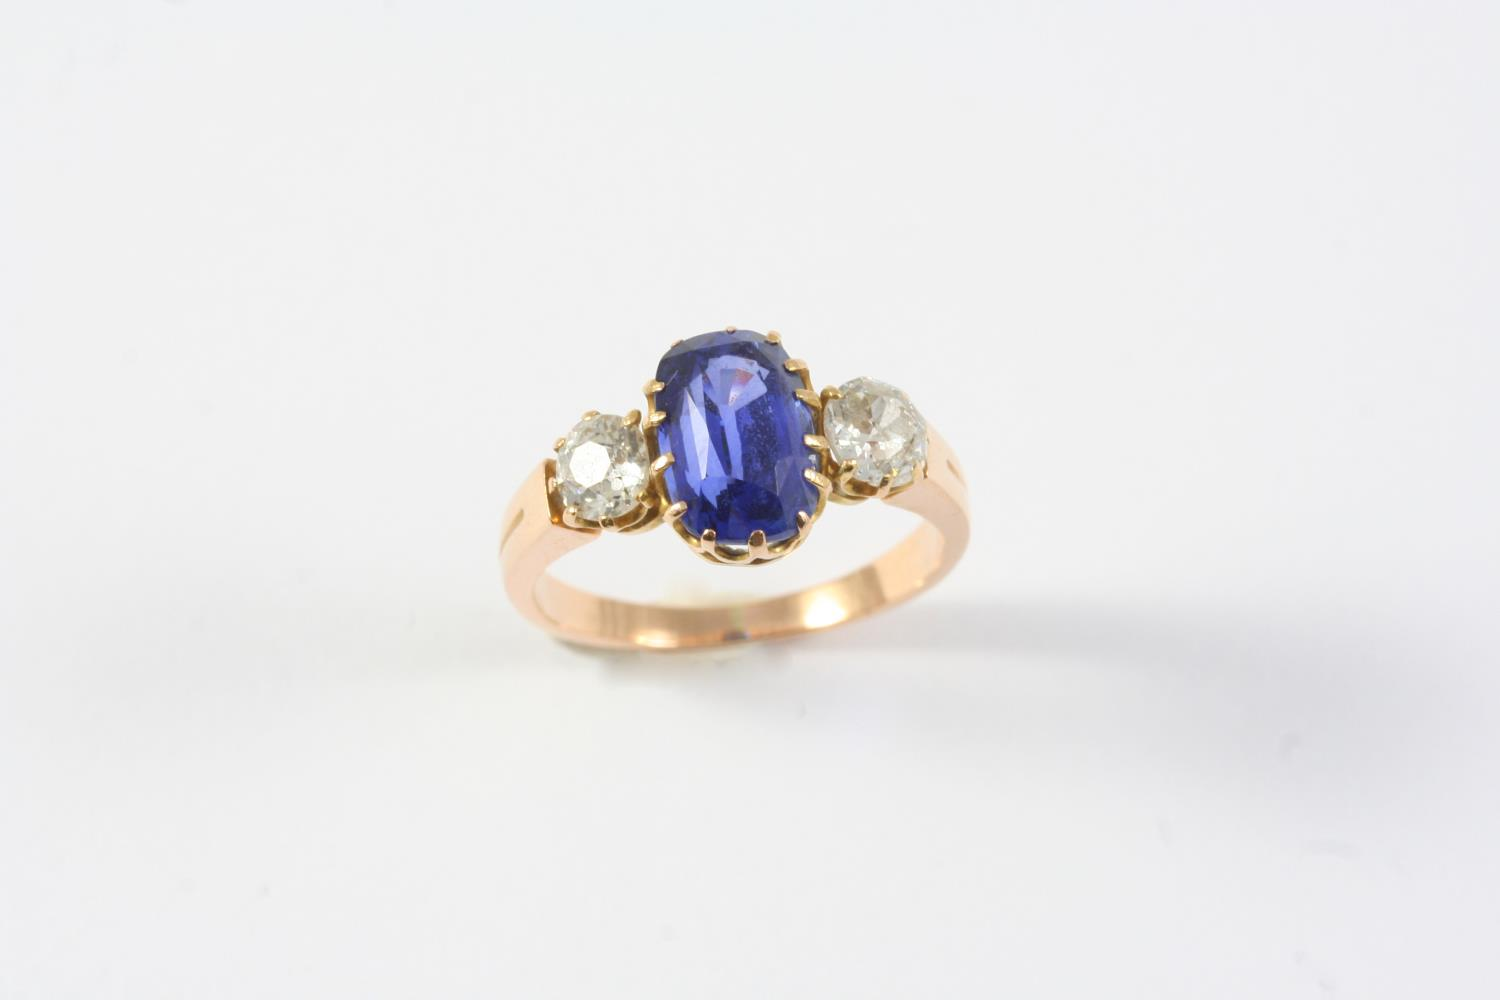 A SAPPHIRE AND DIAMOND THREE STONE RING the oval-shaped sapphire weighs approximately 2.60 carats